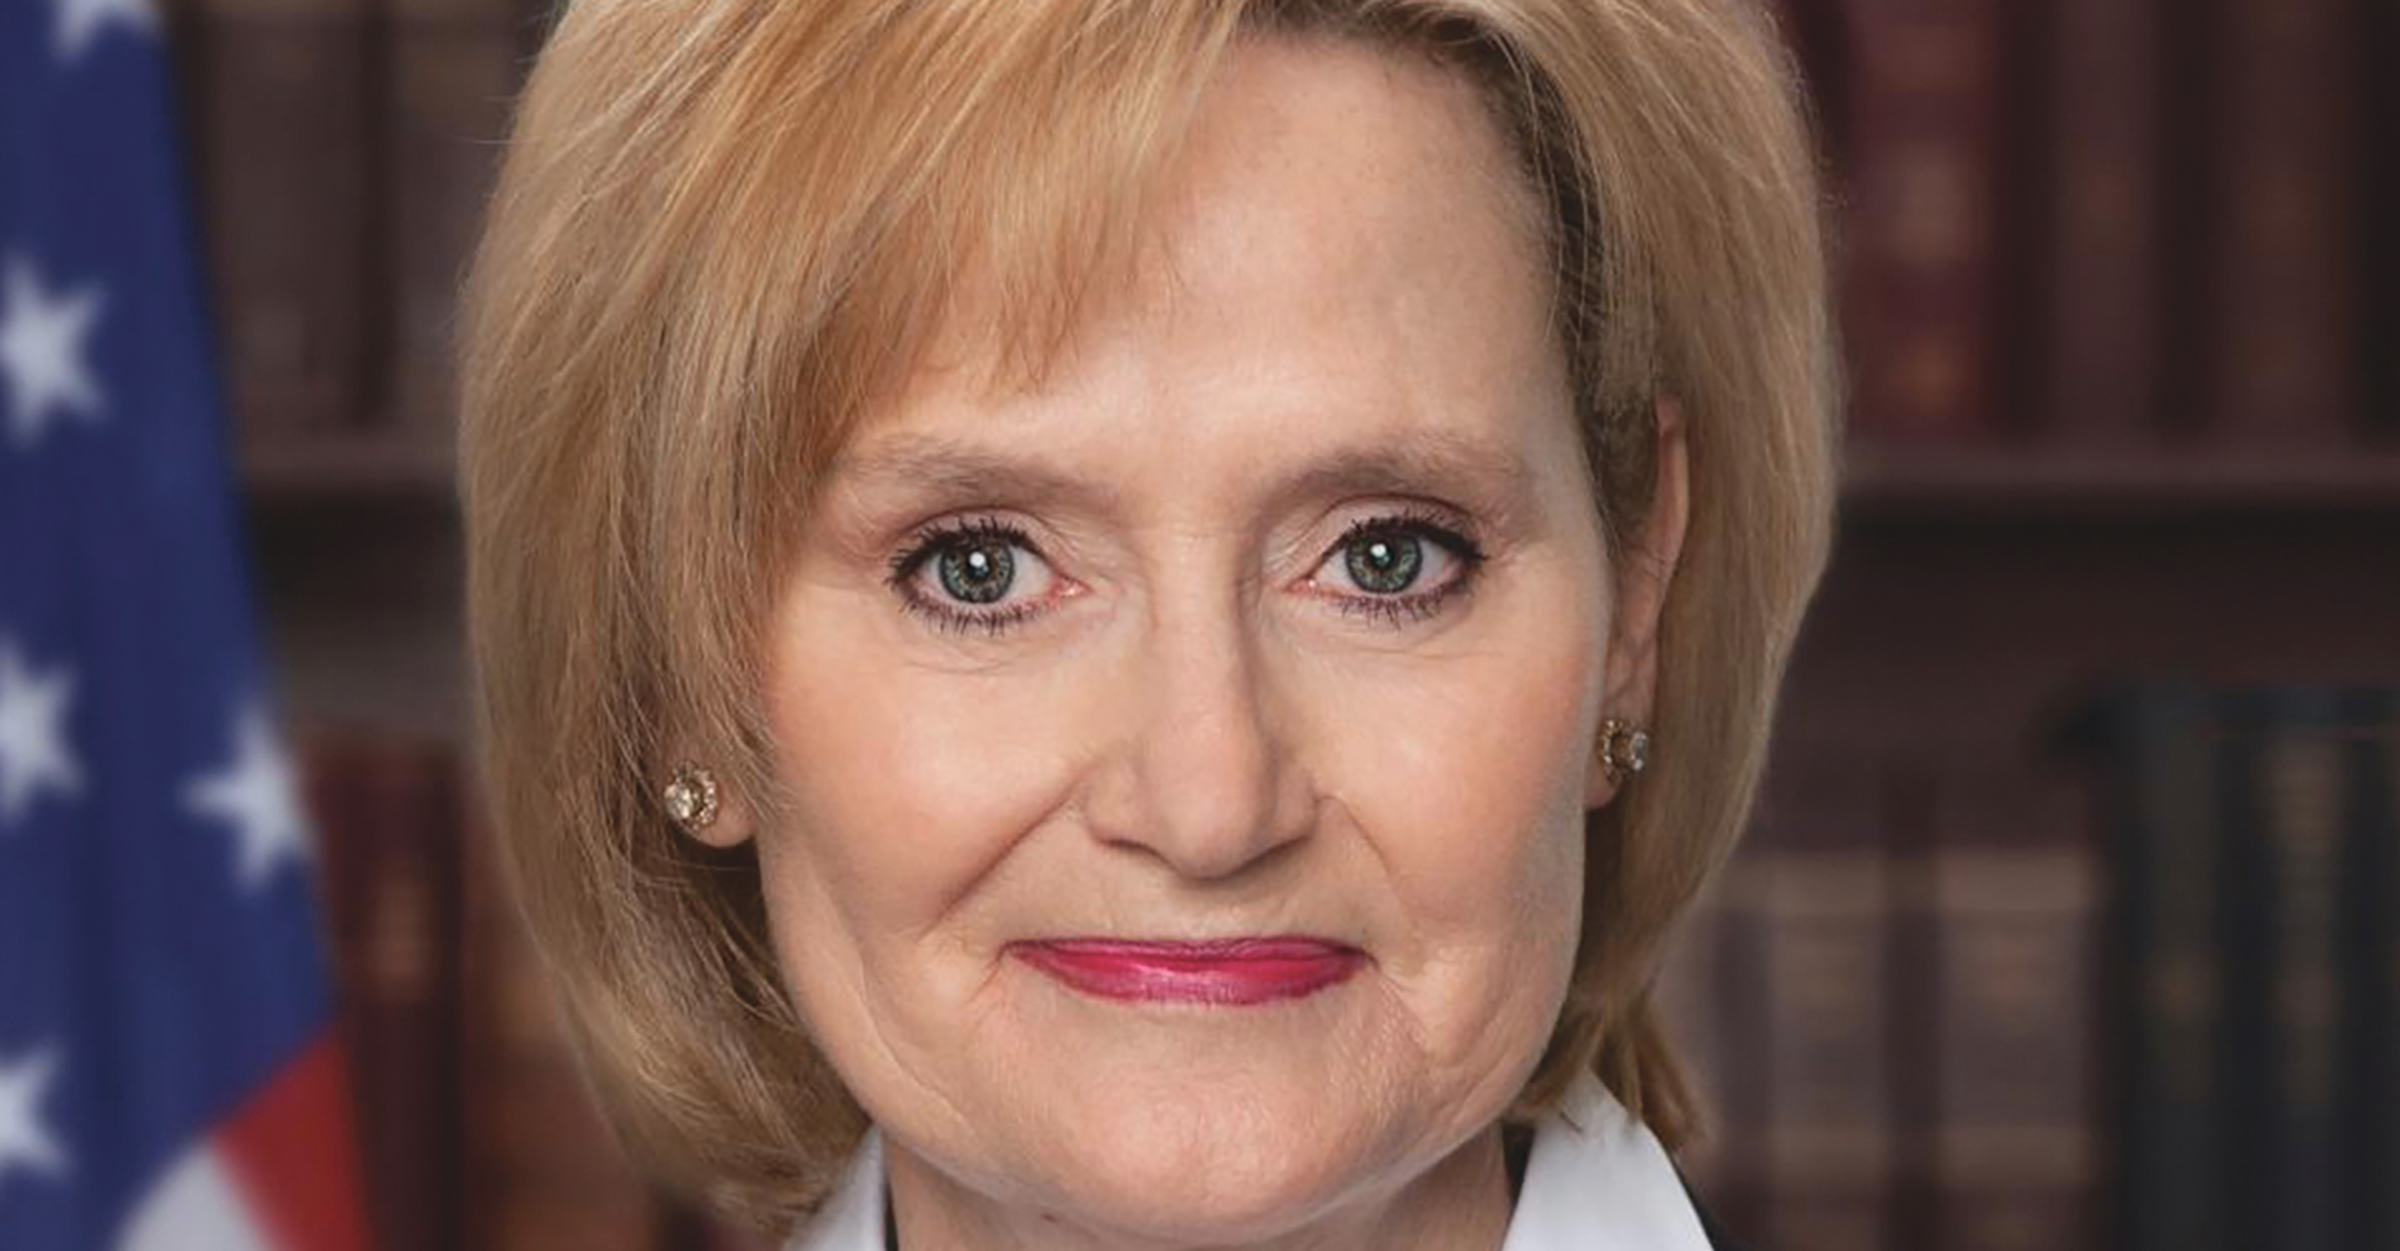 """""""If he invited me to a public hanging, I'd be on the front row""""- Sen. Cindy Hyde-Smith says in Tupelo, MS after Colin Hutchinson, cattle rancher, praises her. U.S. Senate candidate Mike Espy will head to a runoff against incumbent Republican Hyde-Smith on Nov. 27. (Photo: Official Senate Photo / Wikimedia Commons)"""